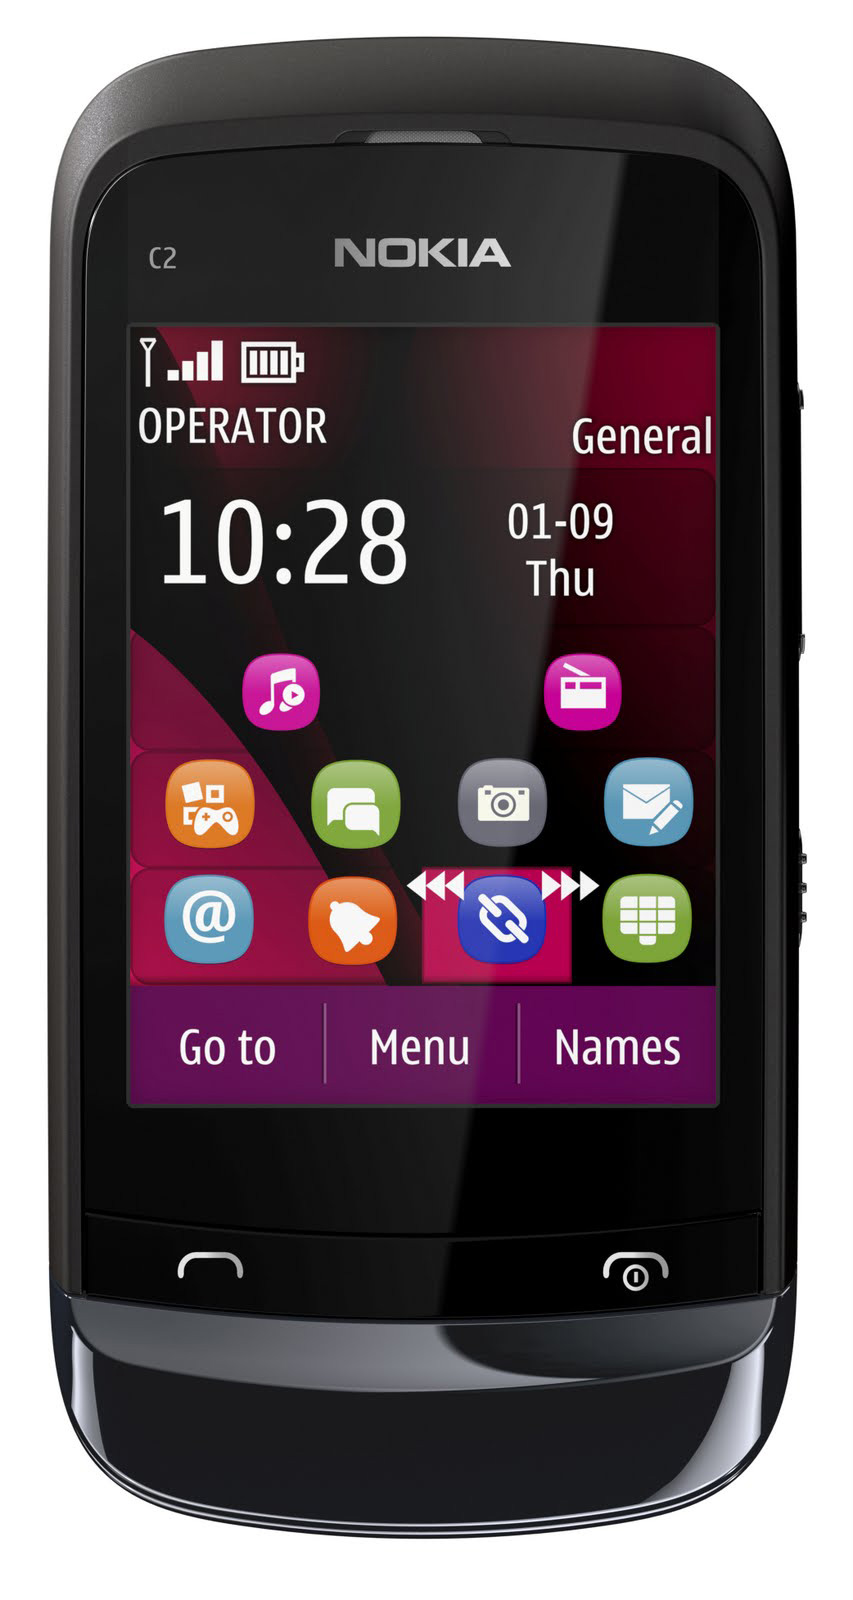 Nokia C2 02 Touch And Type Specs And Price Phonegg